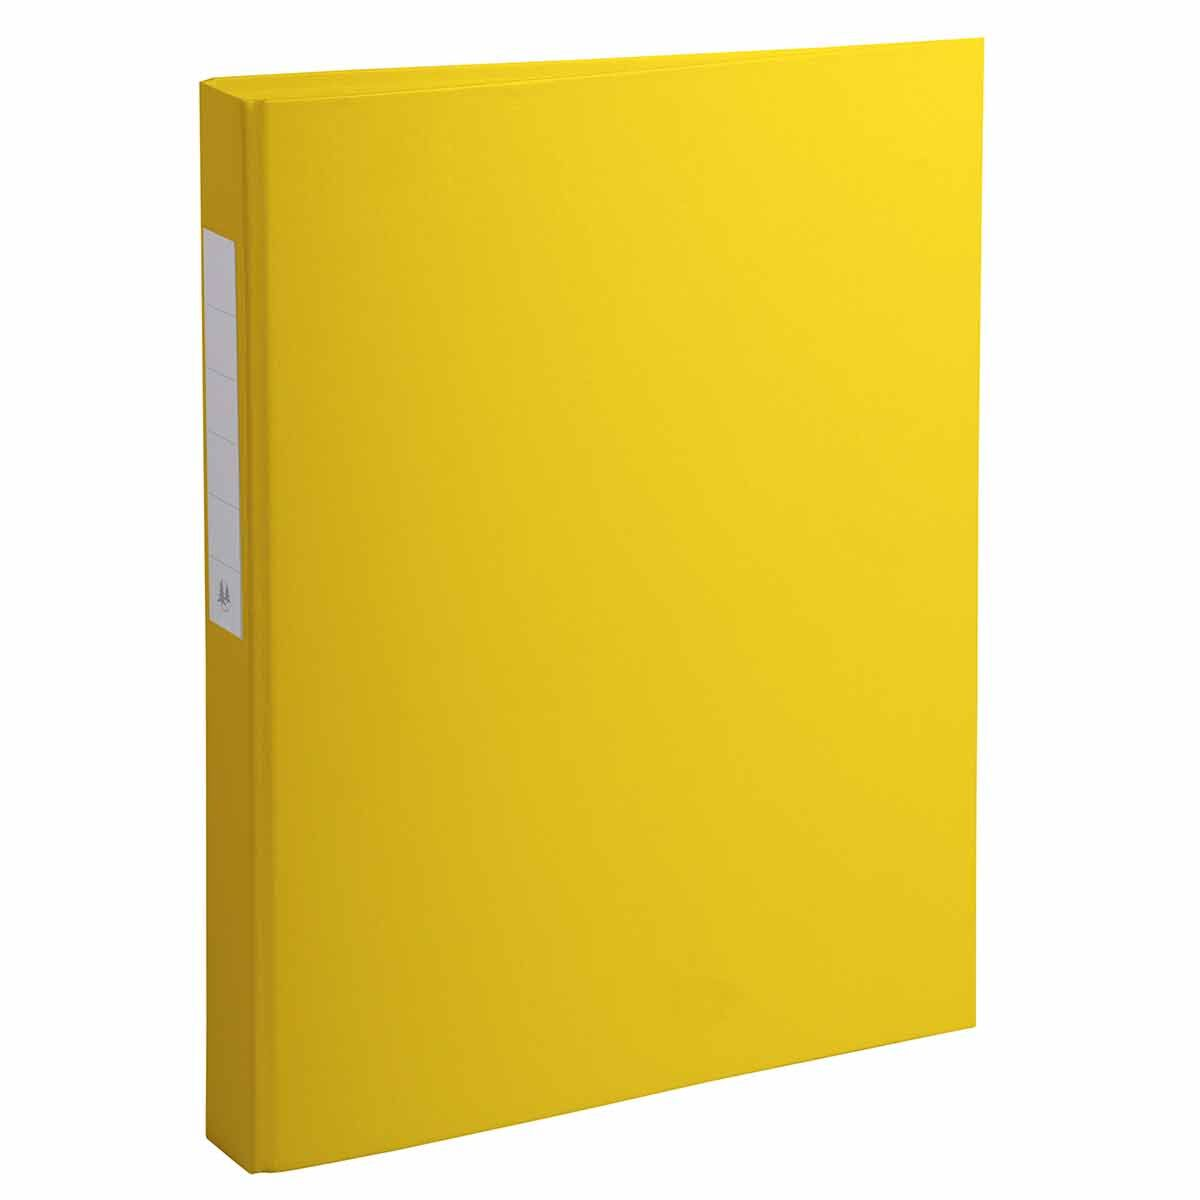 Exacompta PP Ring Binder A4 4 Rings 25mm Label on Spine Pack of 10 Yellow